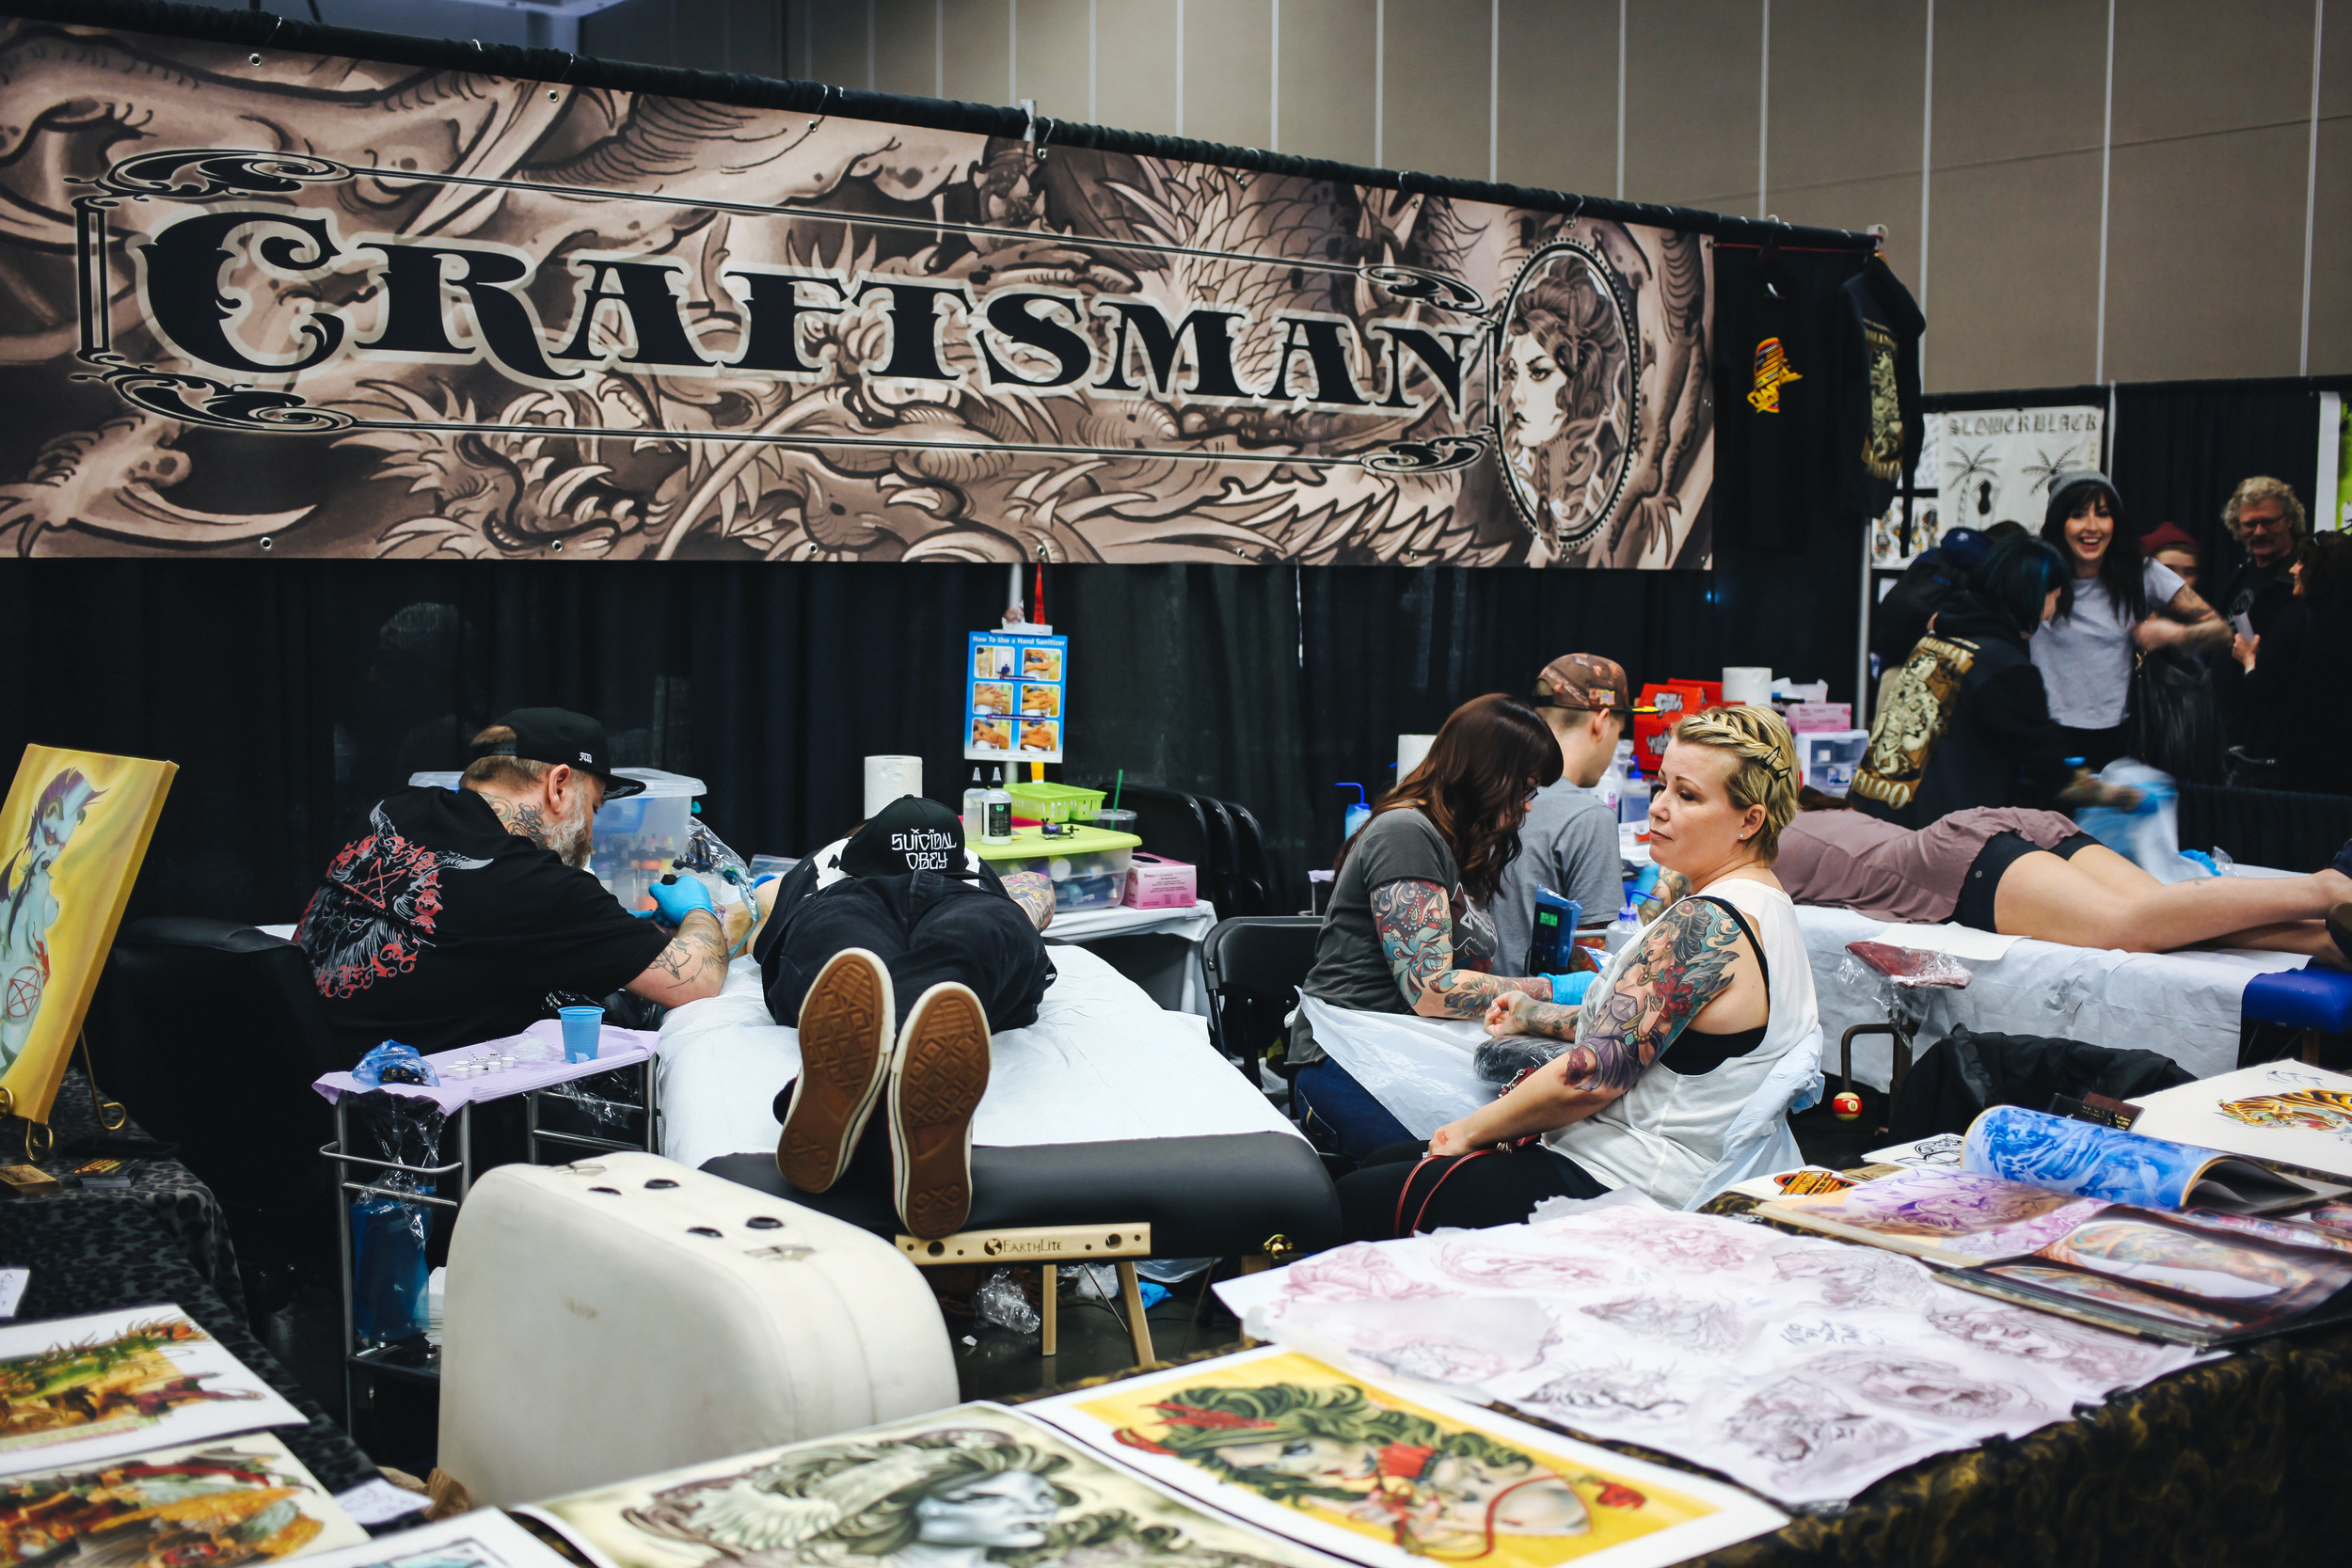 VancouverTattooConvention-23.jpg